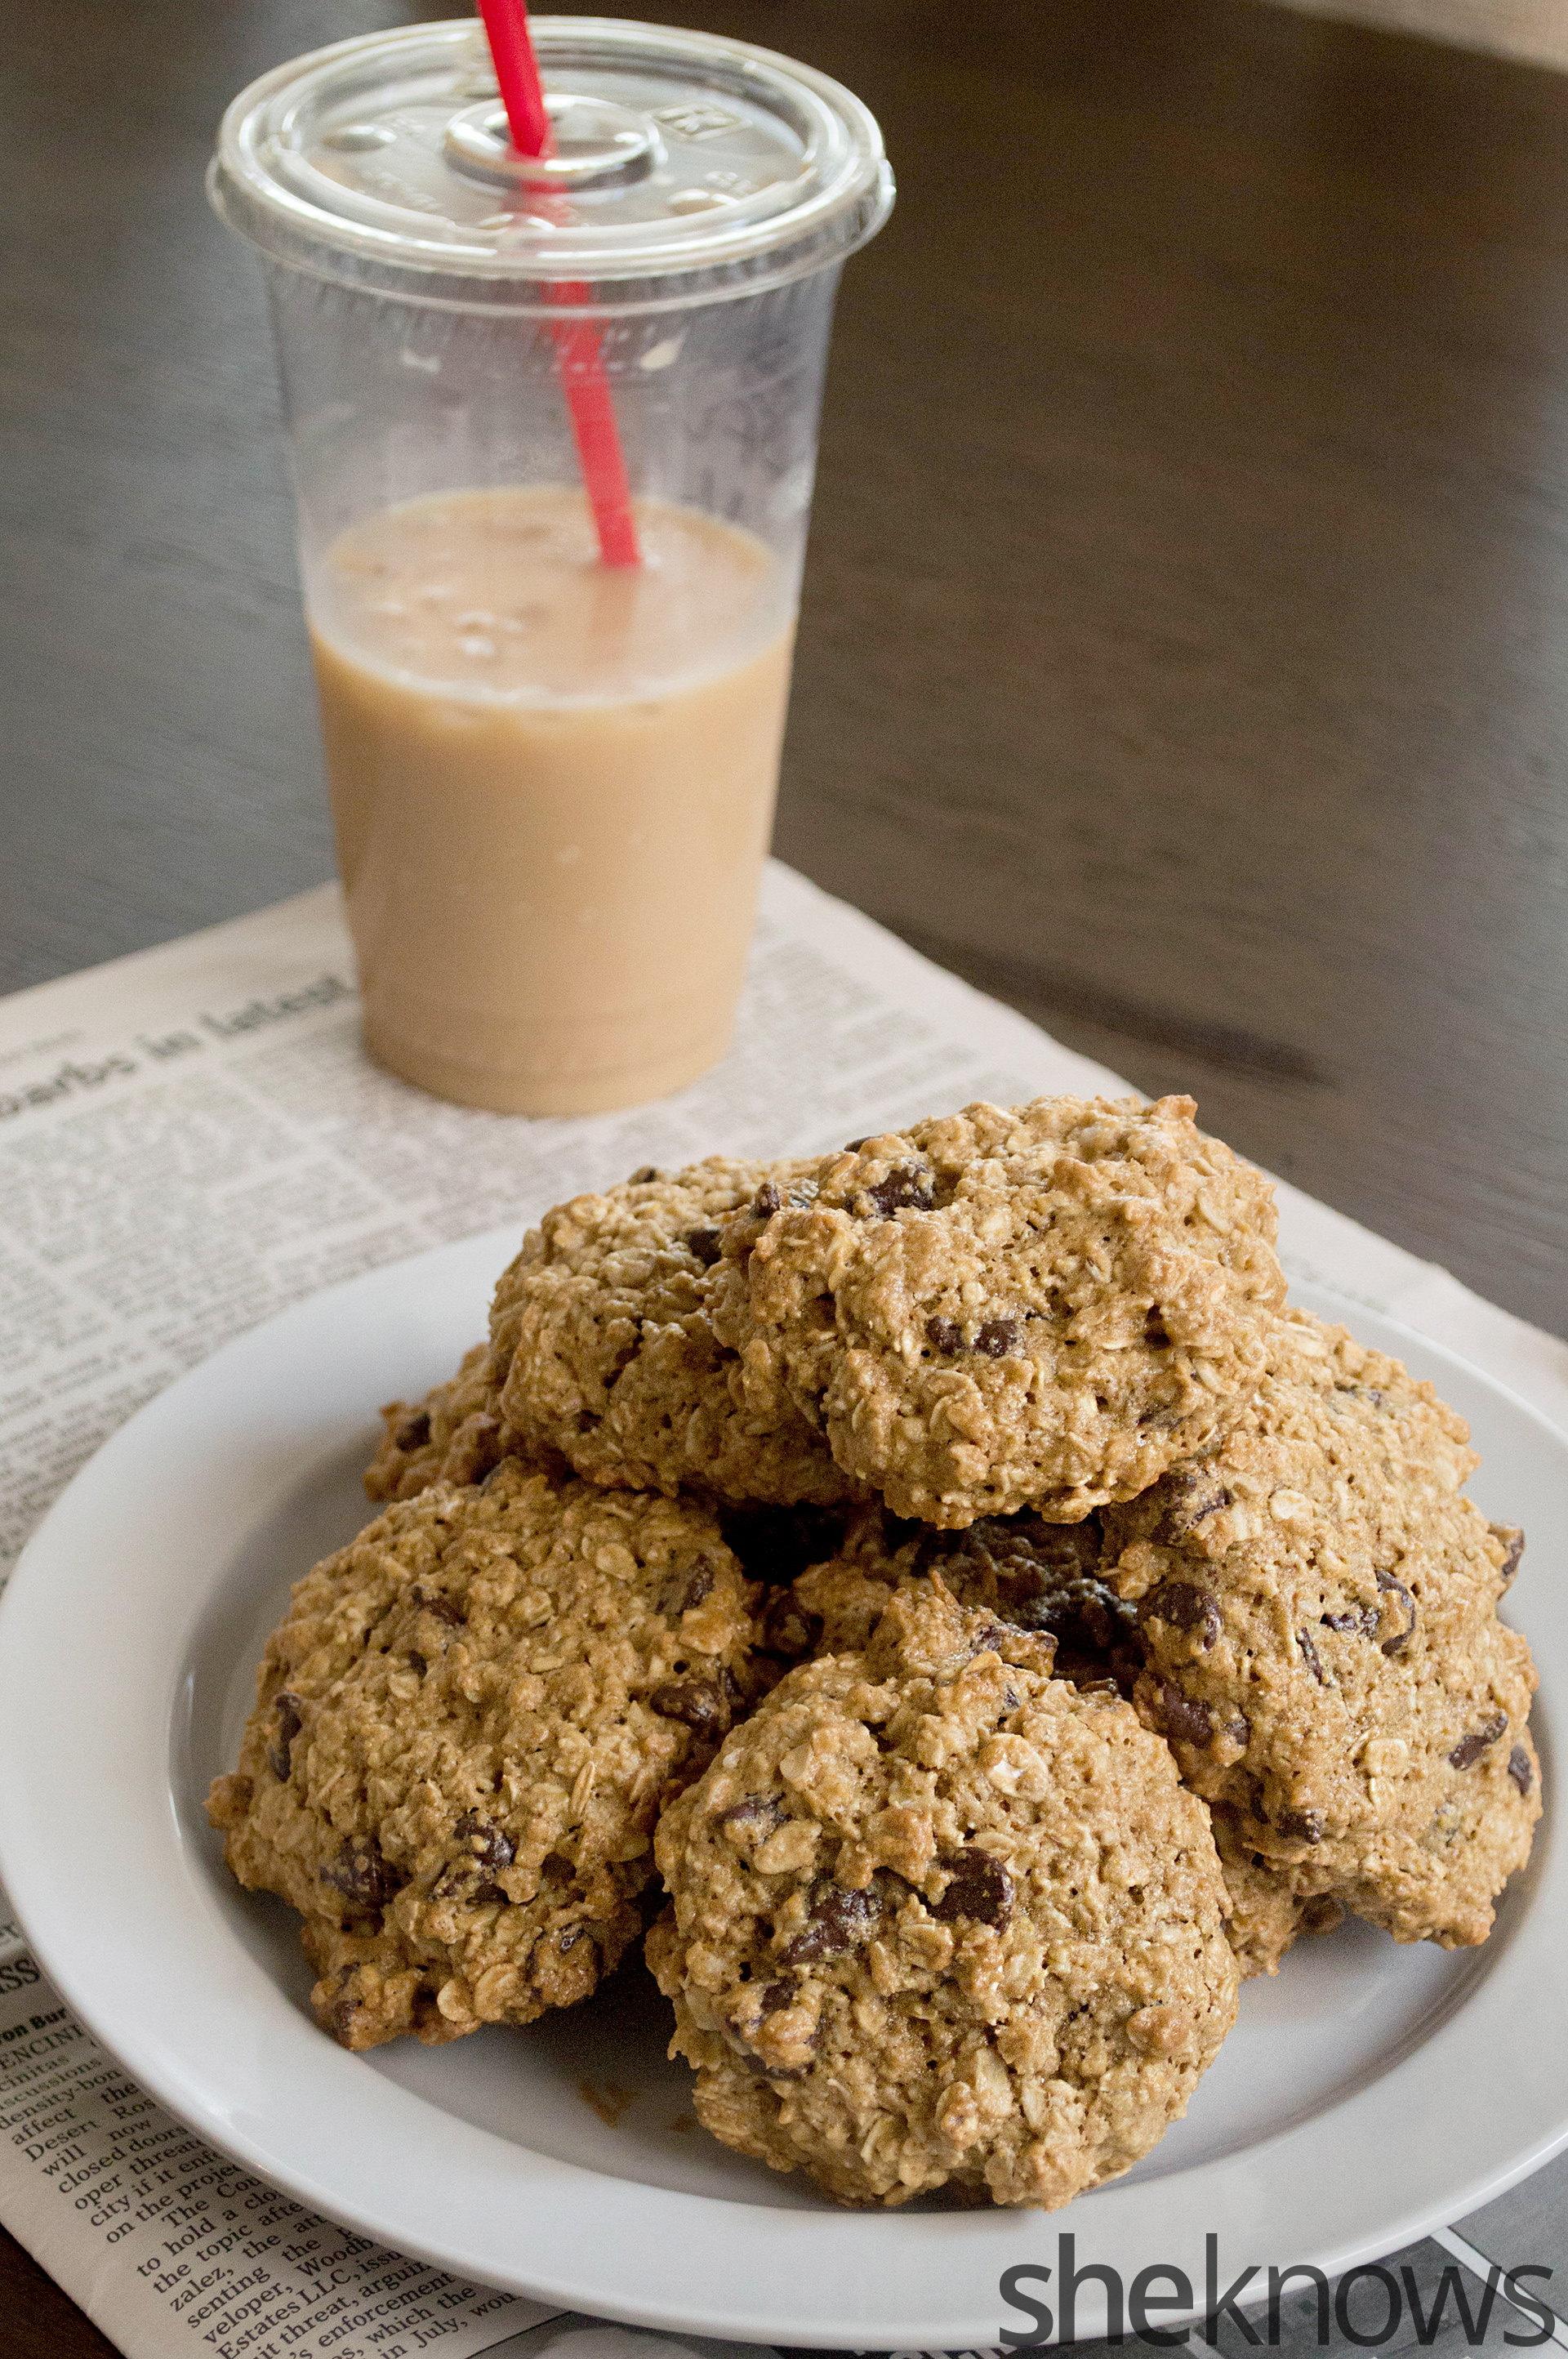 gluten-free oatmeal cookies on a plate